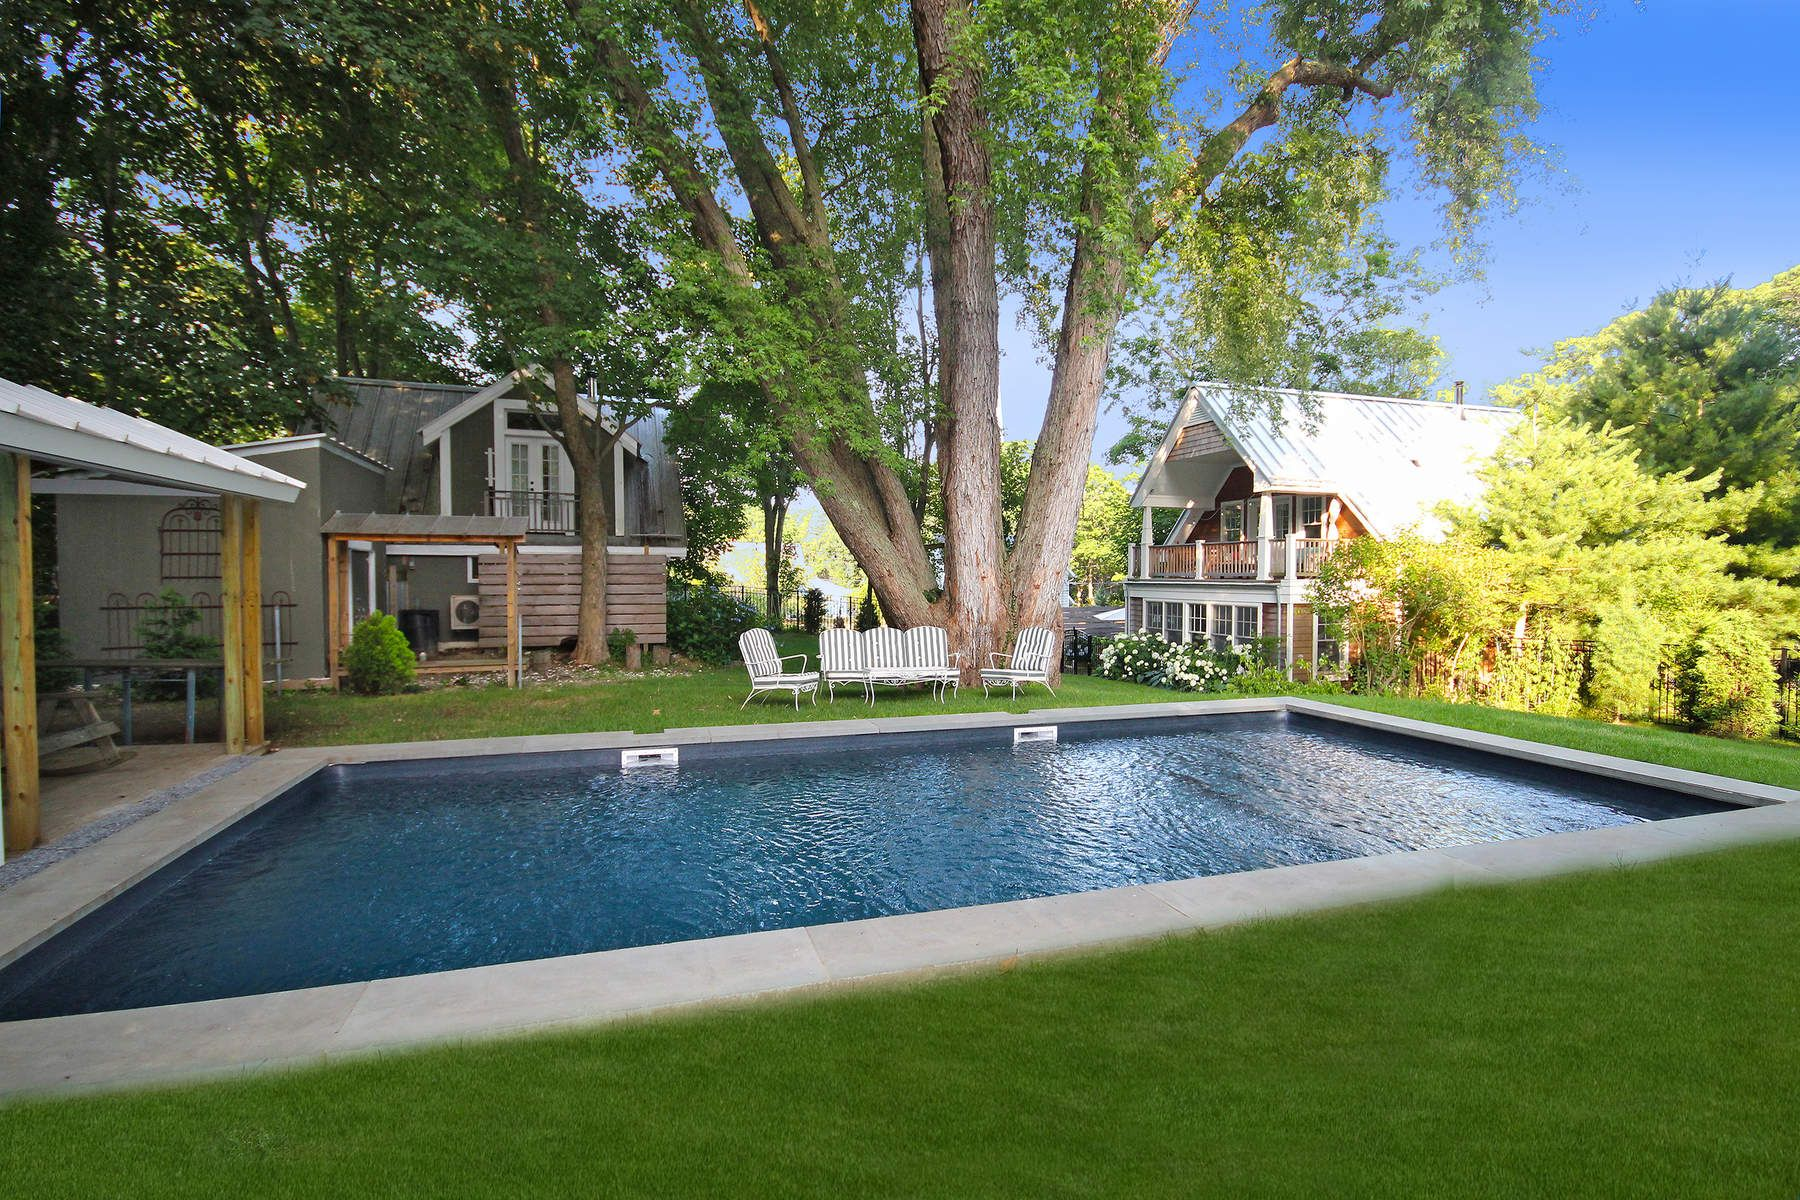 Single Family Home for Rent at Sag Harbor Compound with Pool 51 Harrison Street Sag Harbor, New York 11963 United States